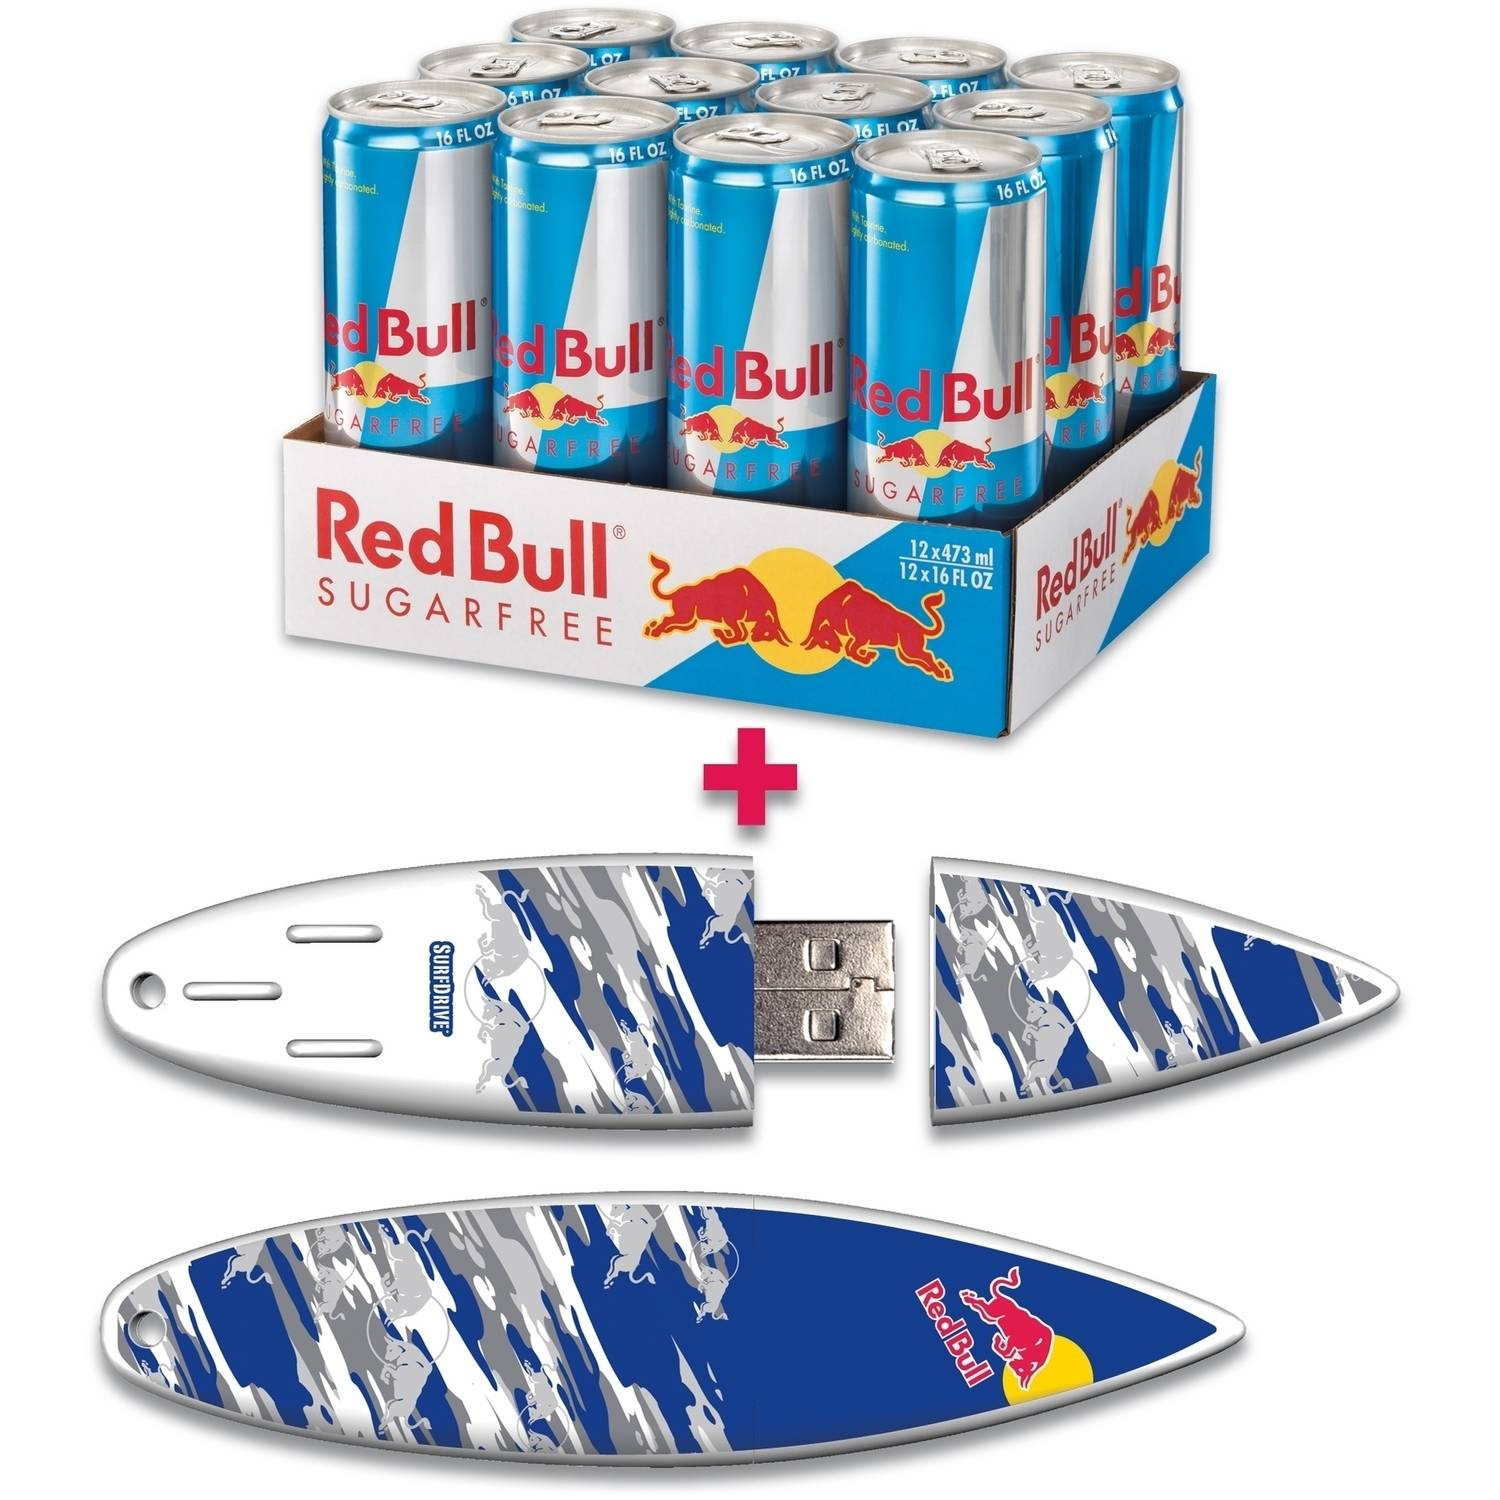 Red Bull 12-Pack 16-Ounce Sugar Free Energy Drink and 16GB Blue Camo USB SurfDrive